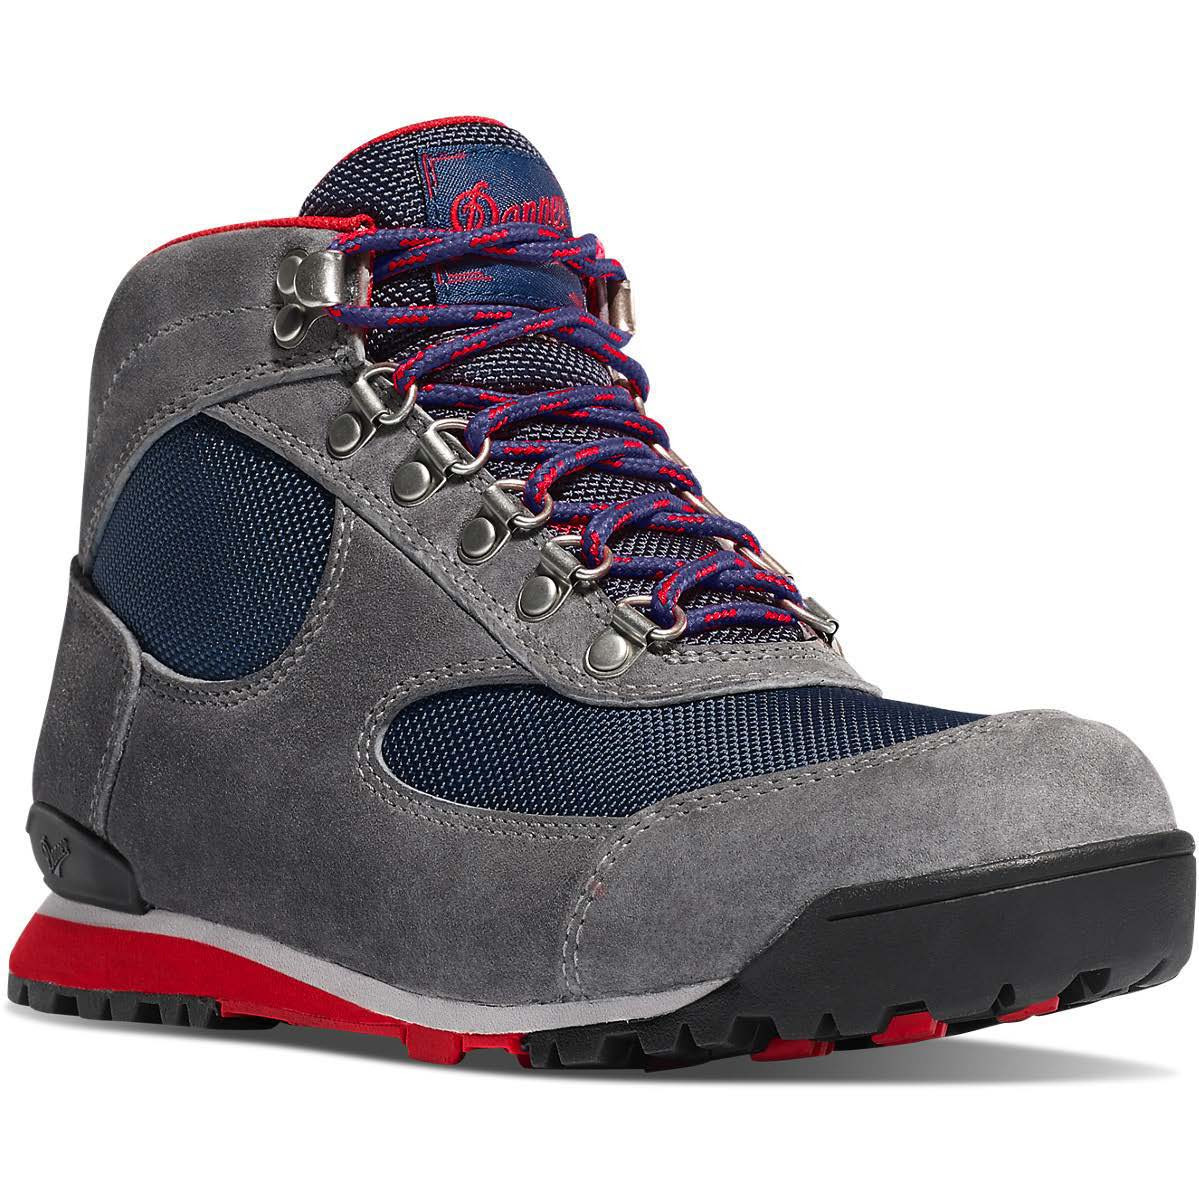 23b4fcb2493 Danner Women's Jag Steel Gray/Blue Wing Teal Outdoor Boot Style No. 37356